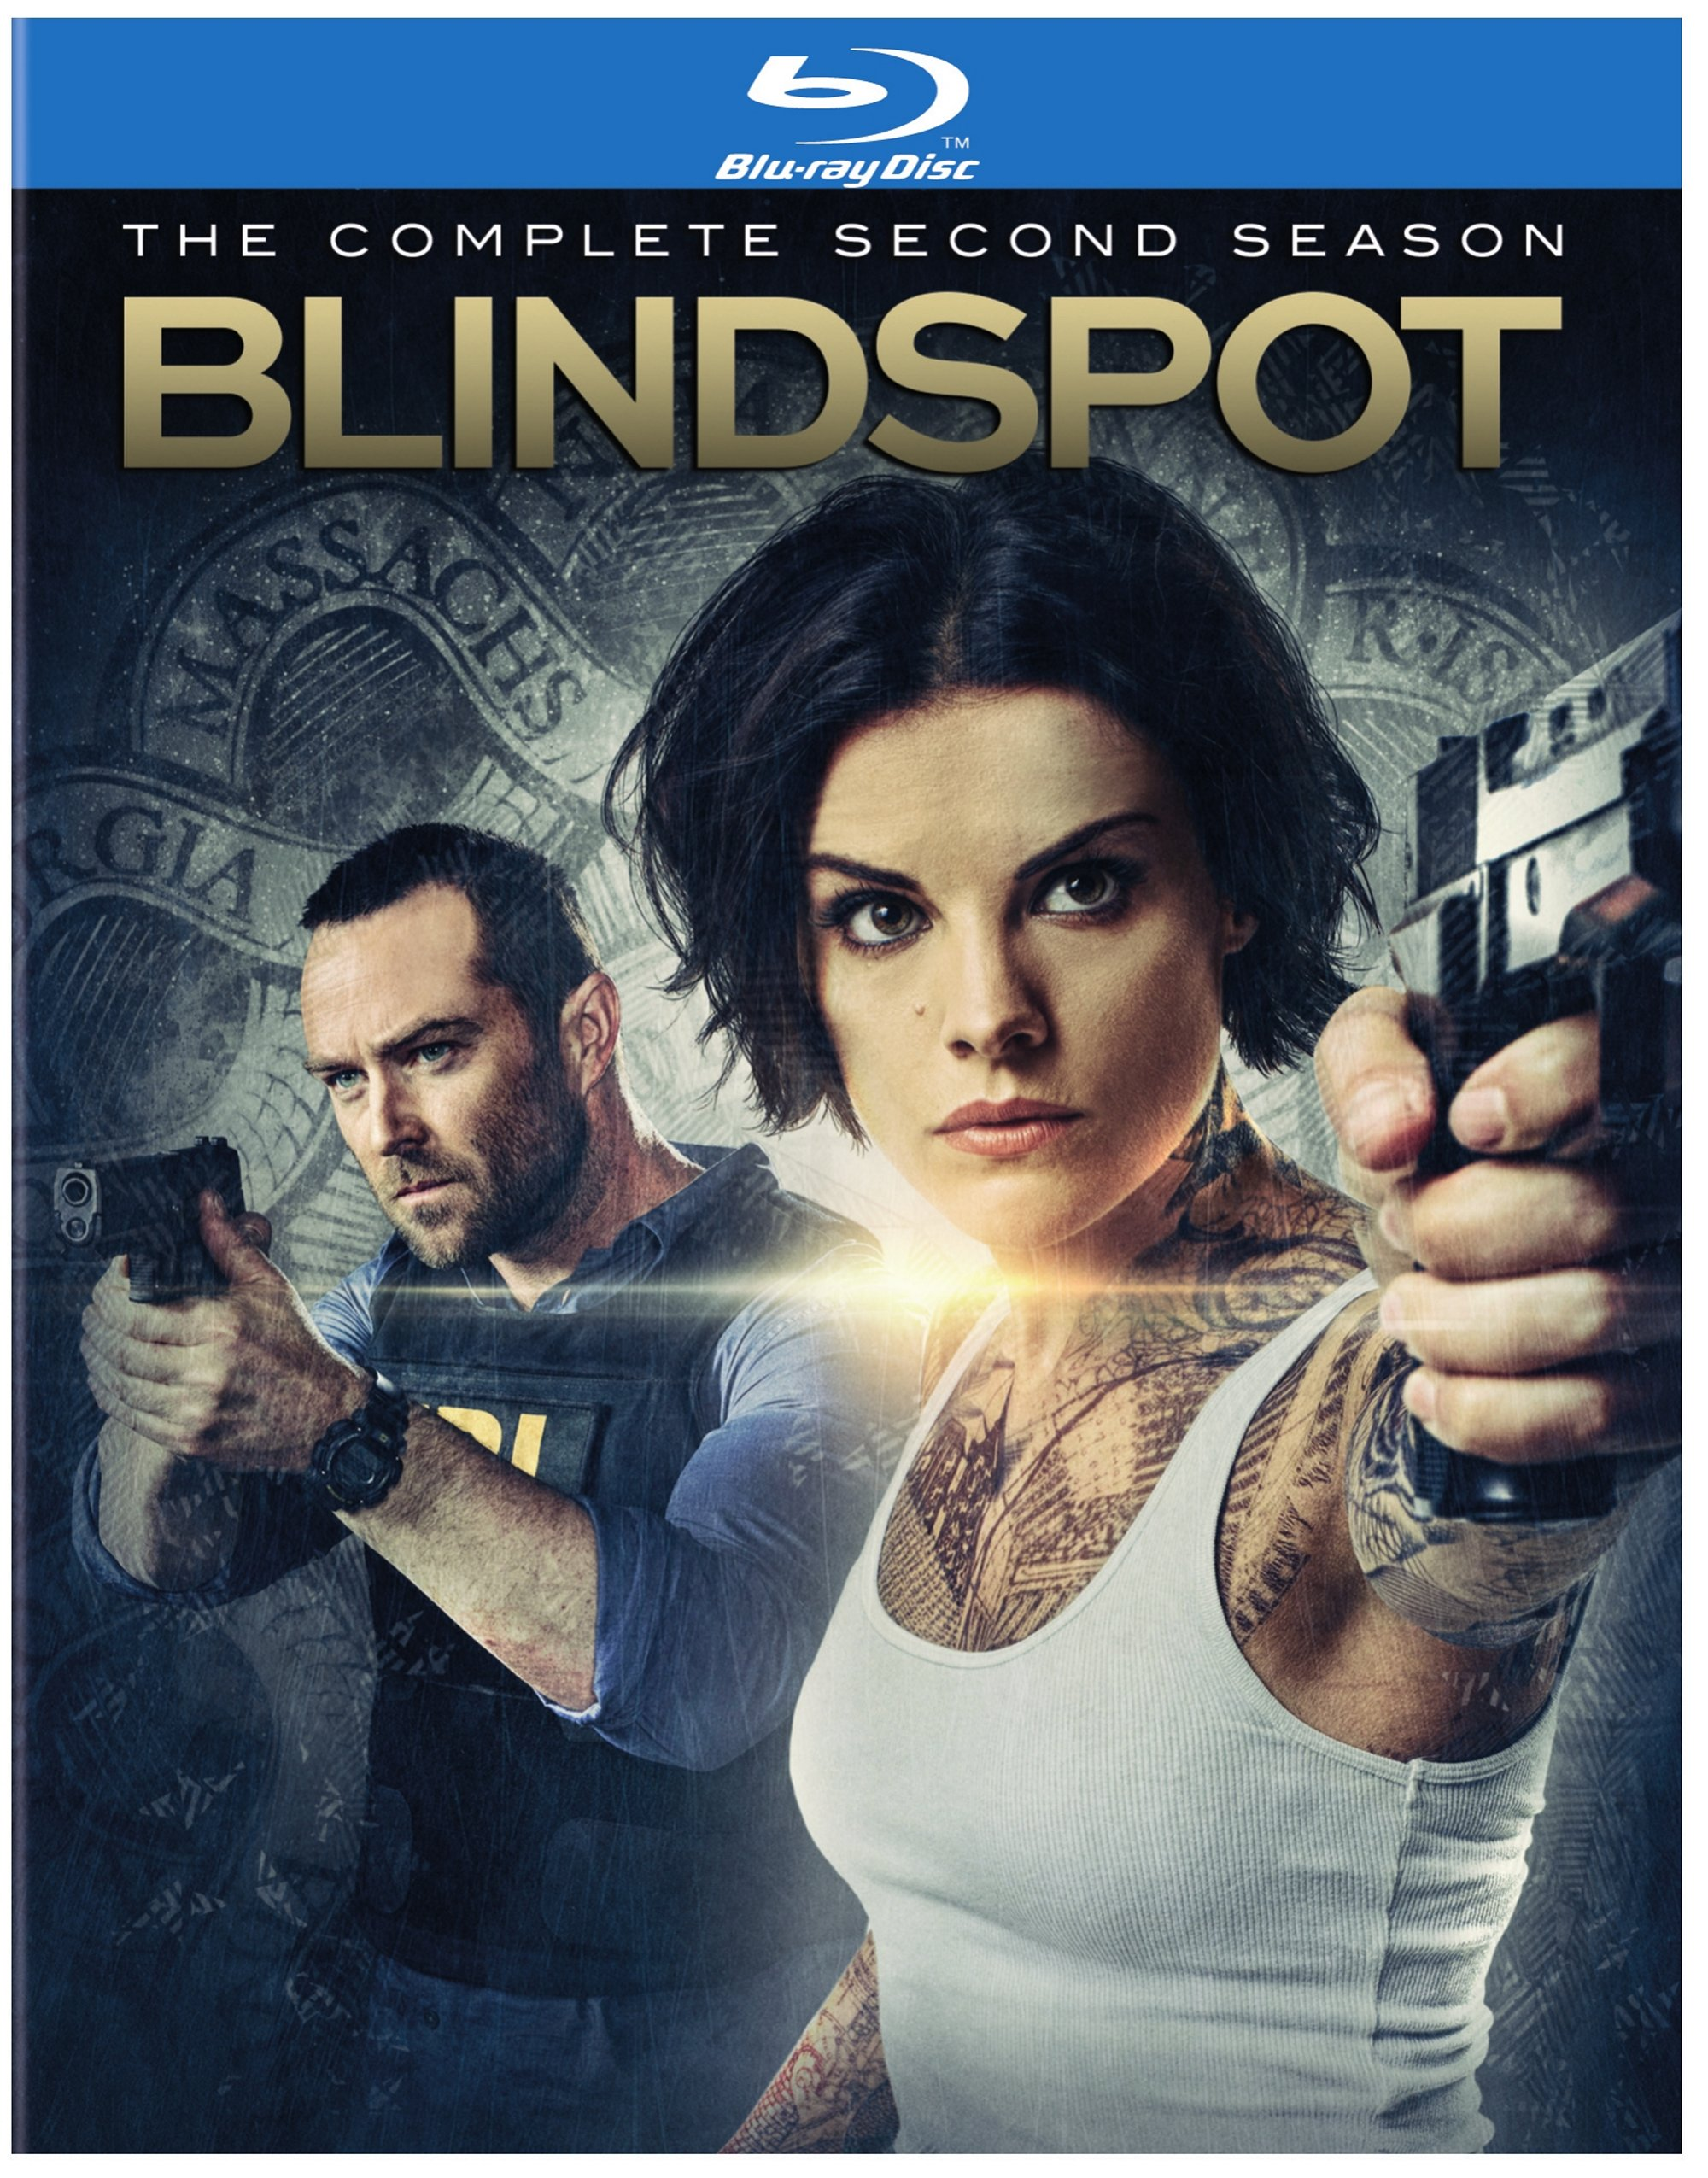 BLINDSPOT: THE COMPLETE SECOND SEASON (4PC)-BLINDSPOT: THE COMPLETE SECOND SEASON (4PC)